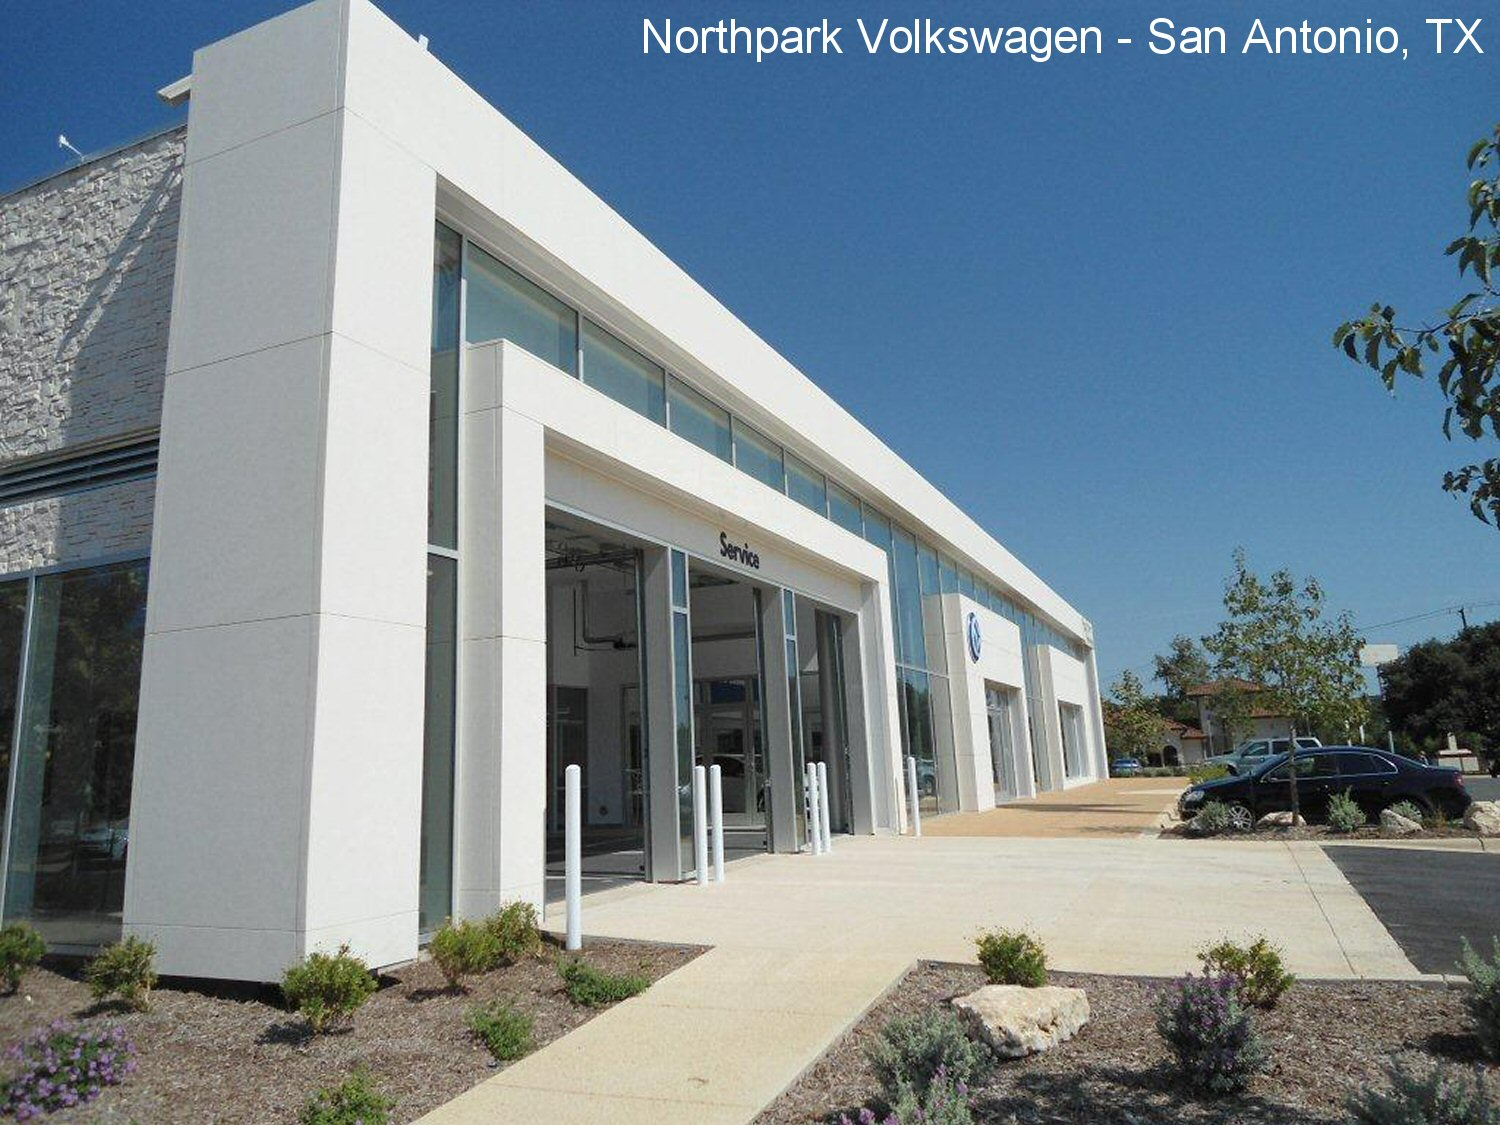 Volkswagen San Antonio - Stone Panels Inc North Park Volkswagen Of Dominion